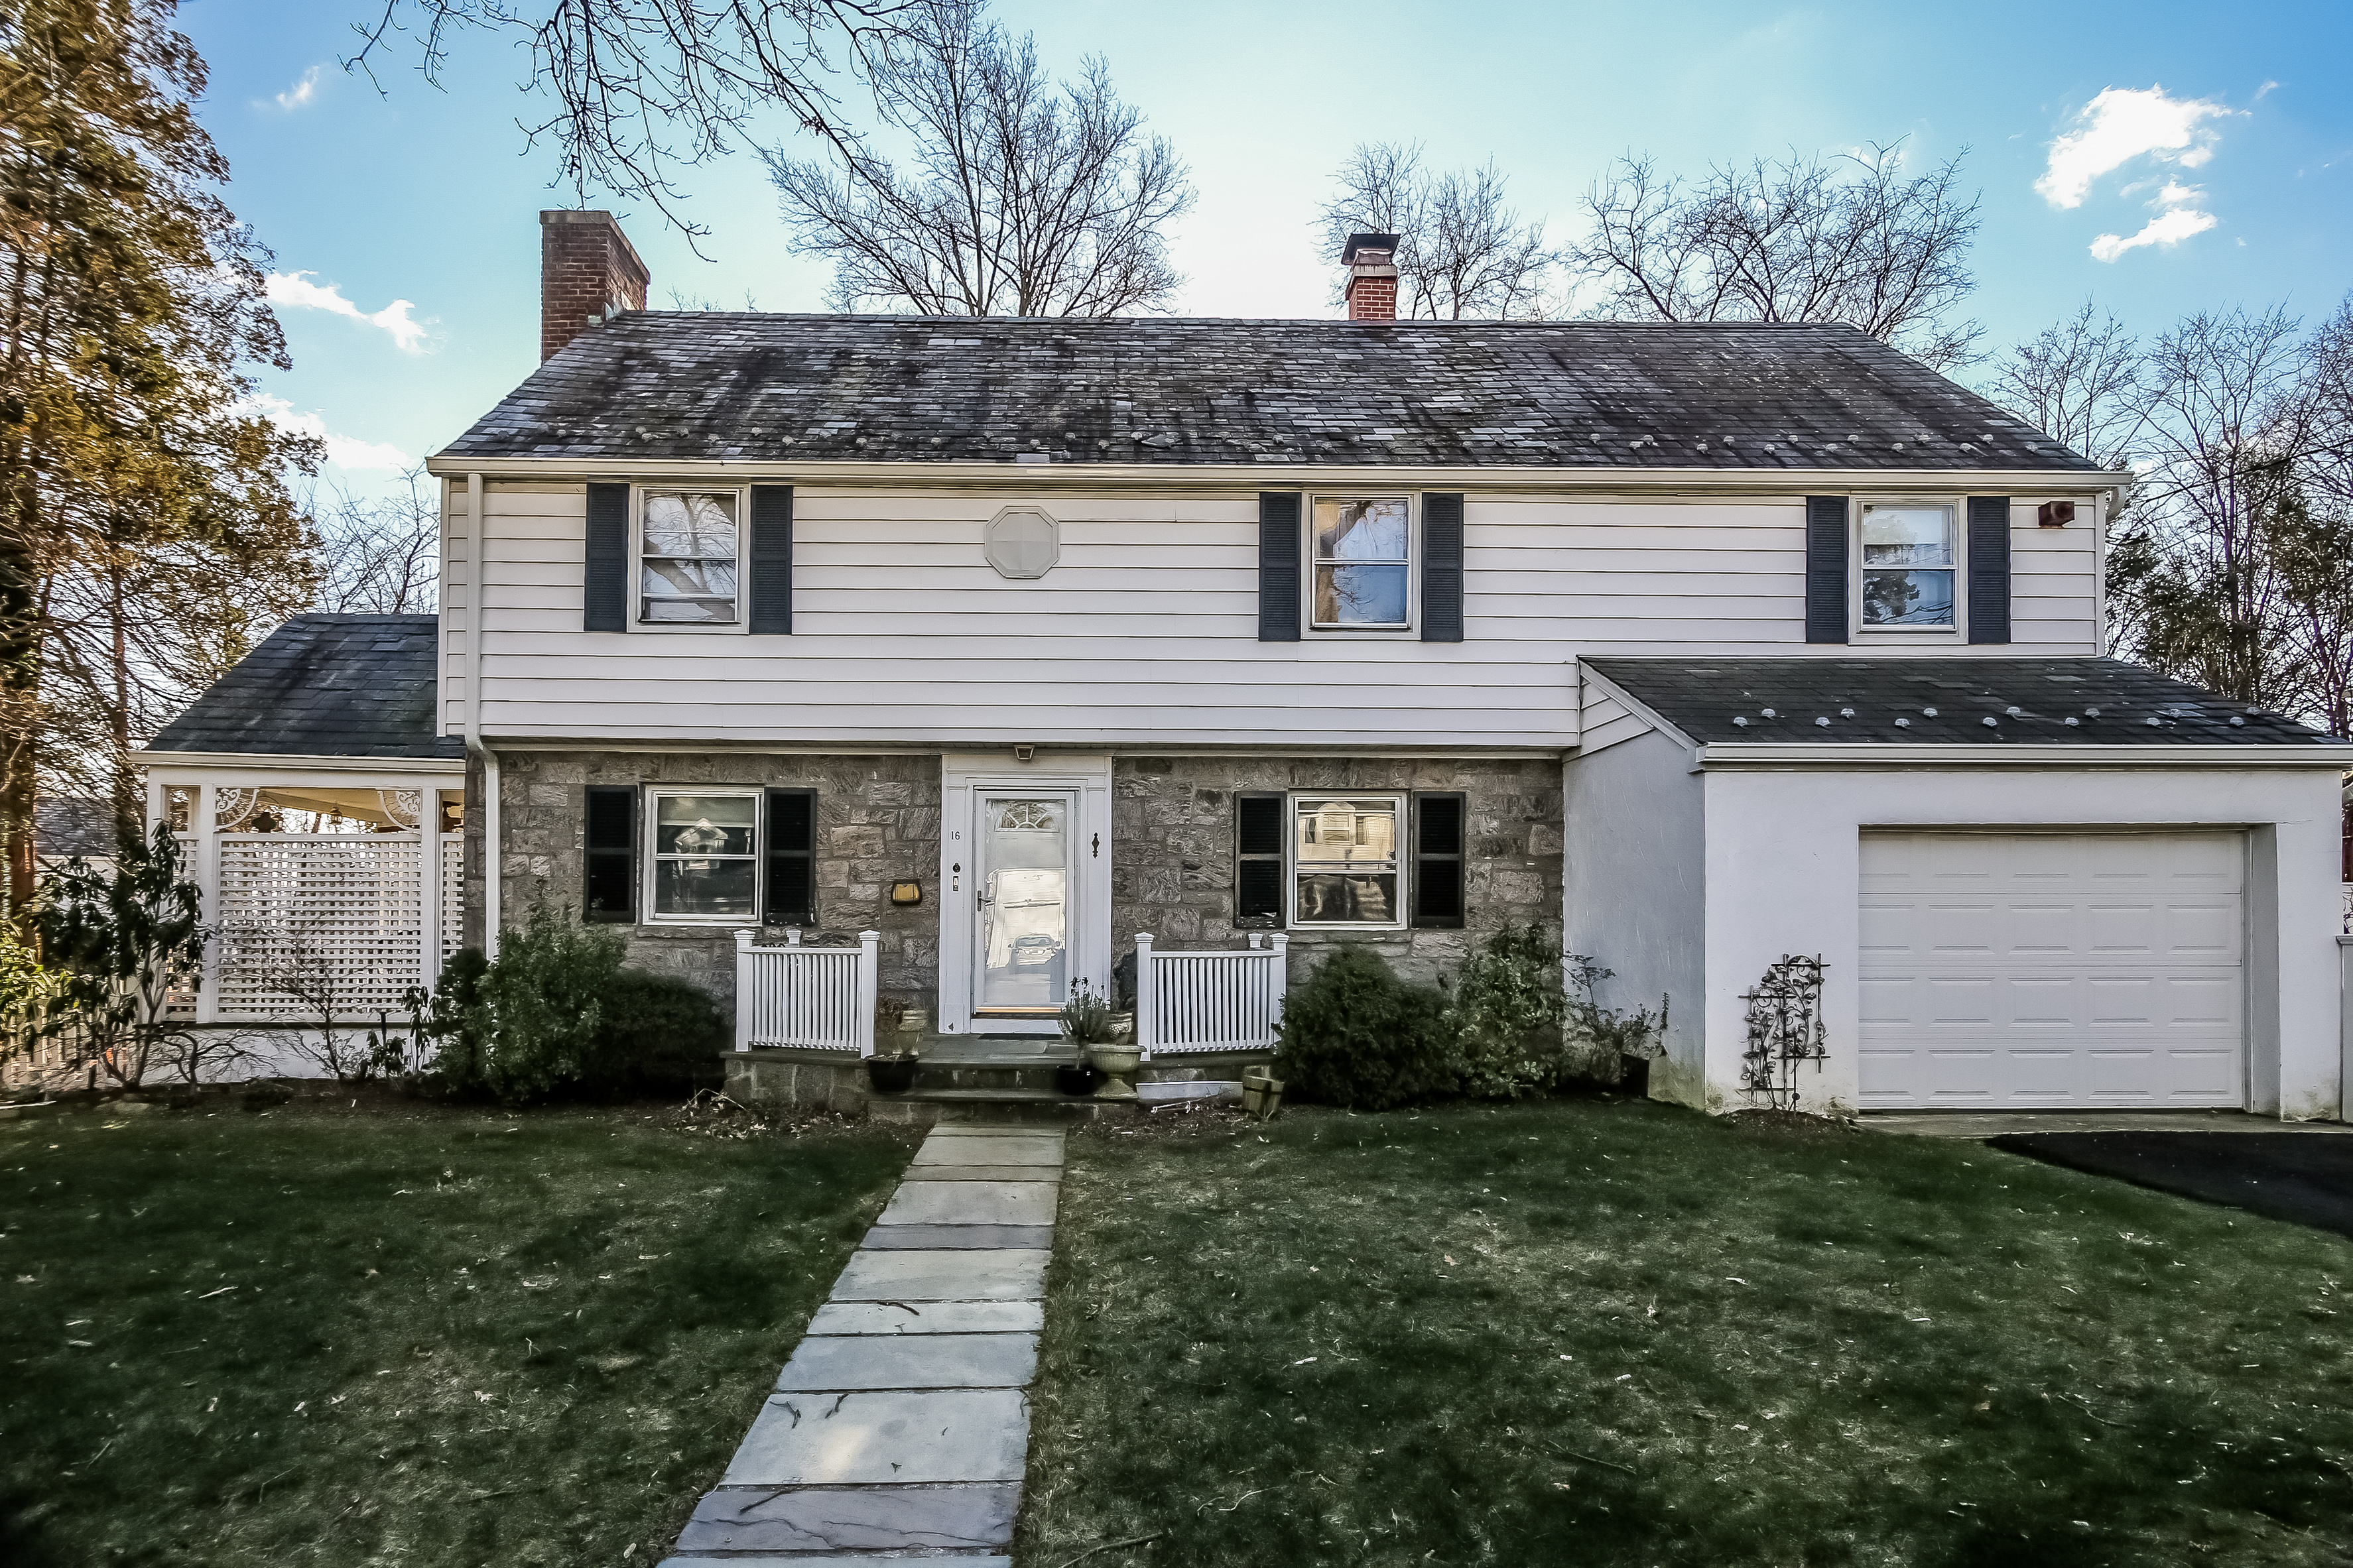 Single Family Home for Sale at Wilmot Woods Colonial 16 Standish Drive Scarsdale, New York 10583 United States